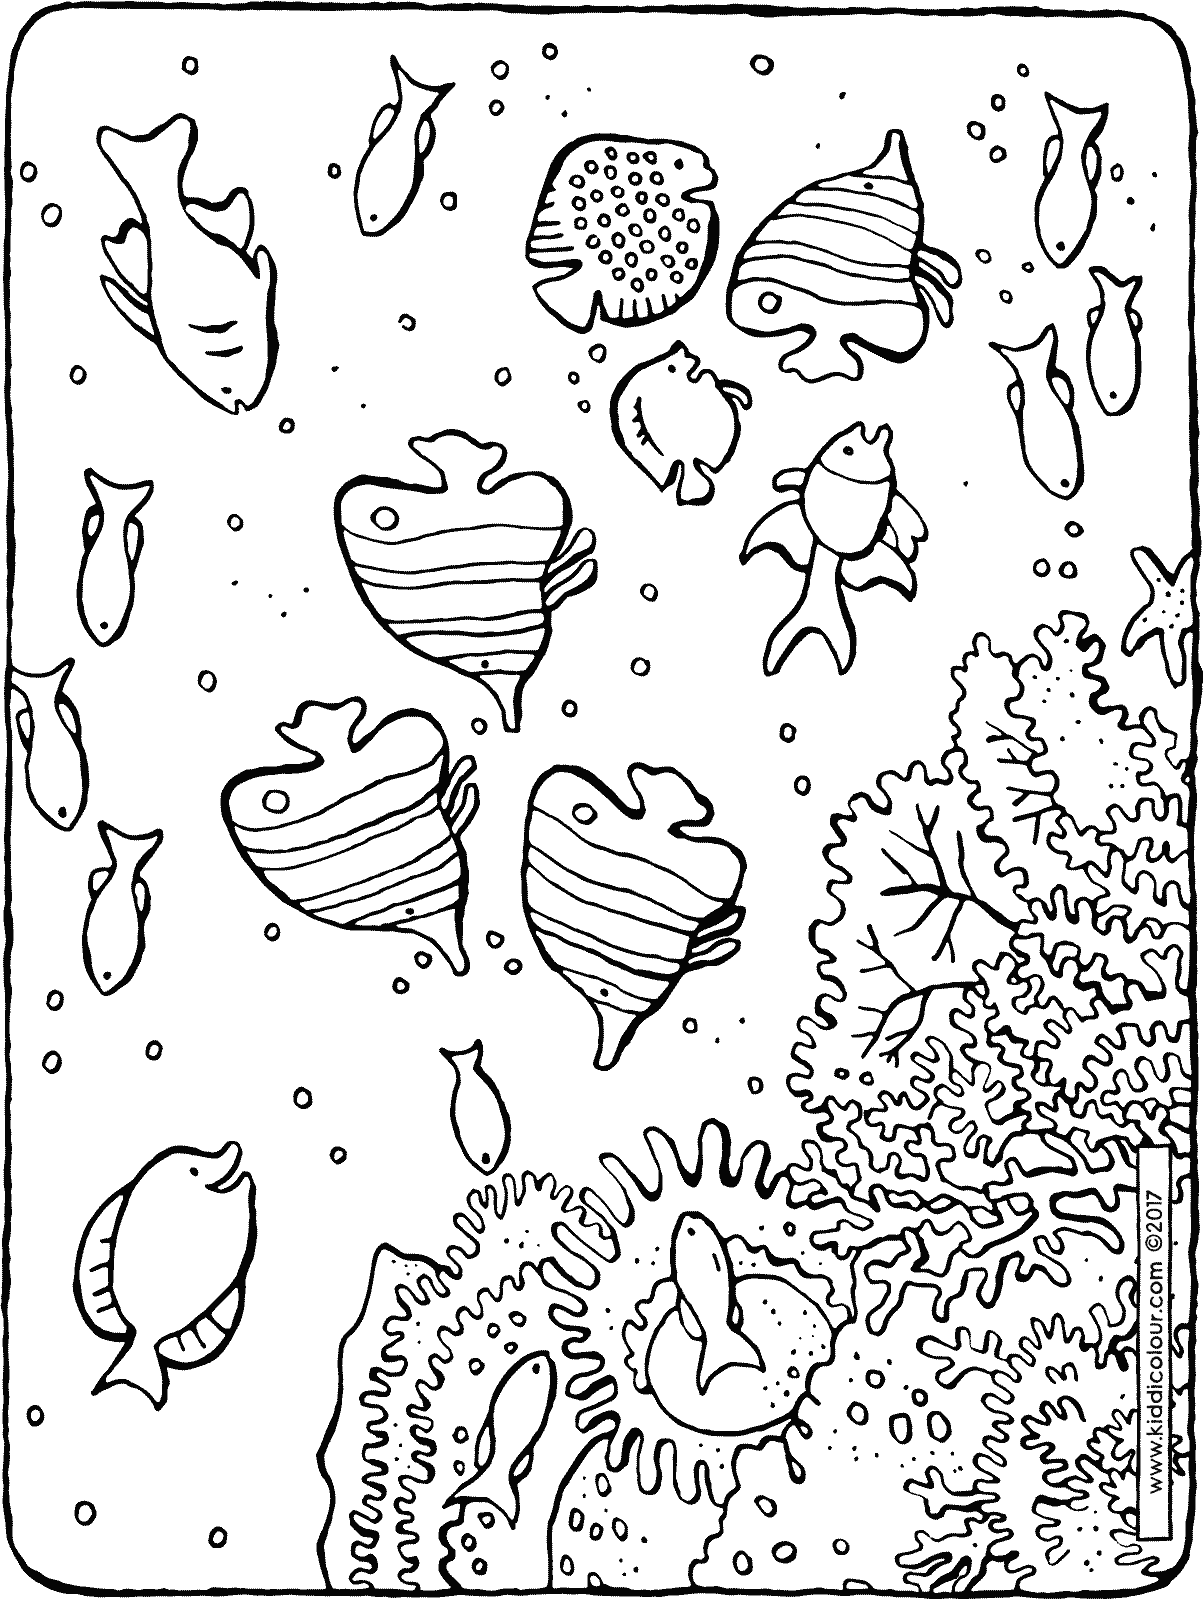 fish in the sea colouring page drawing picture 01H